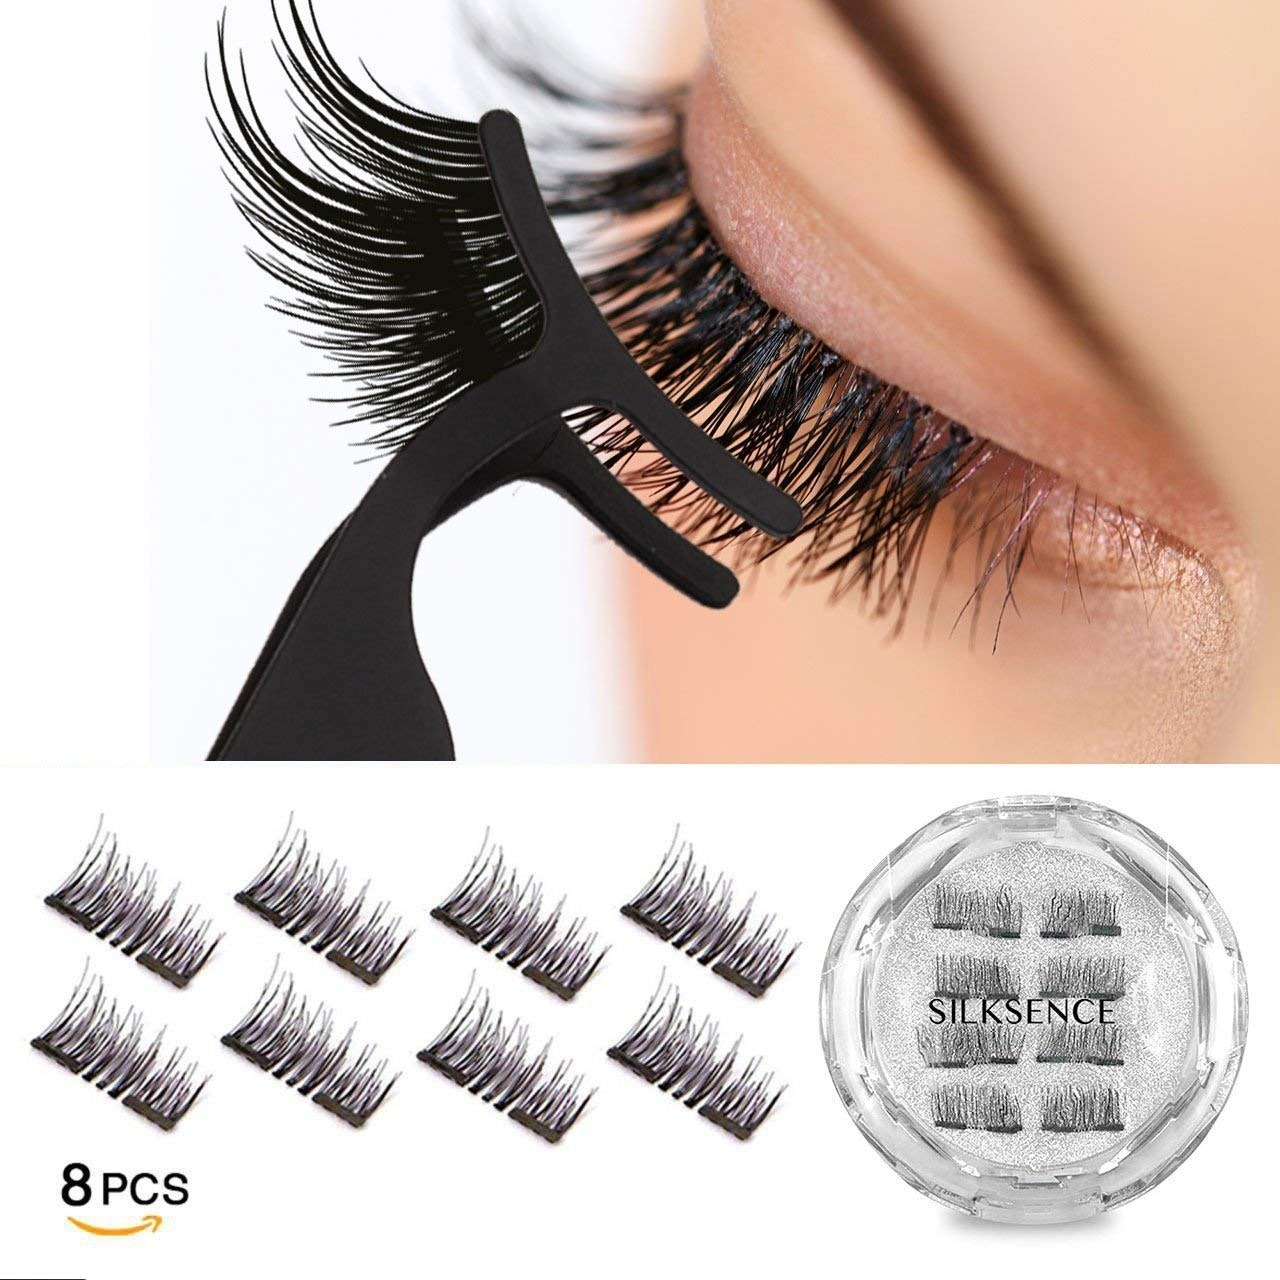 Hearty Handmade 1 Pair 3d Double Magnetic False Eyelashes Makeup Reusable Natural Full Strip Fake Magnet Eye Lashes Extension Cosmetic Beauty Essentials